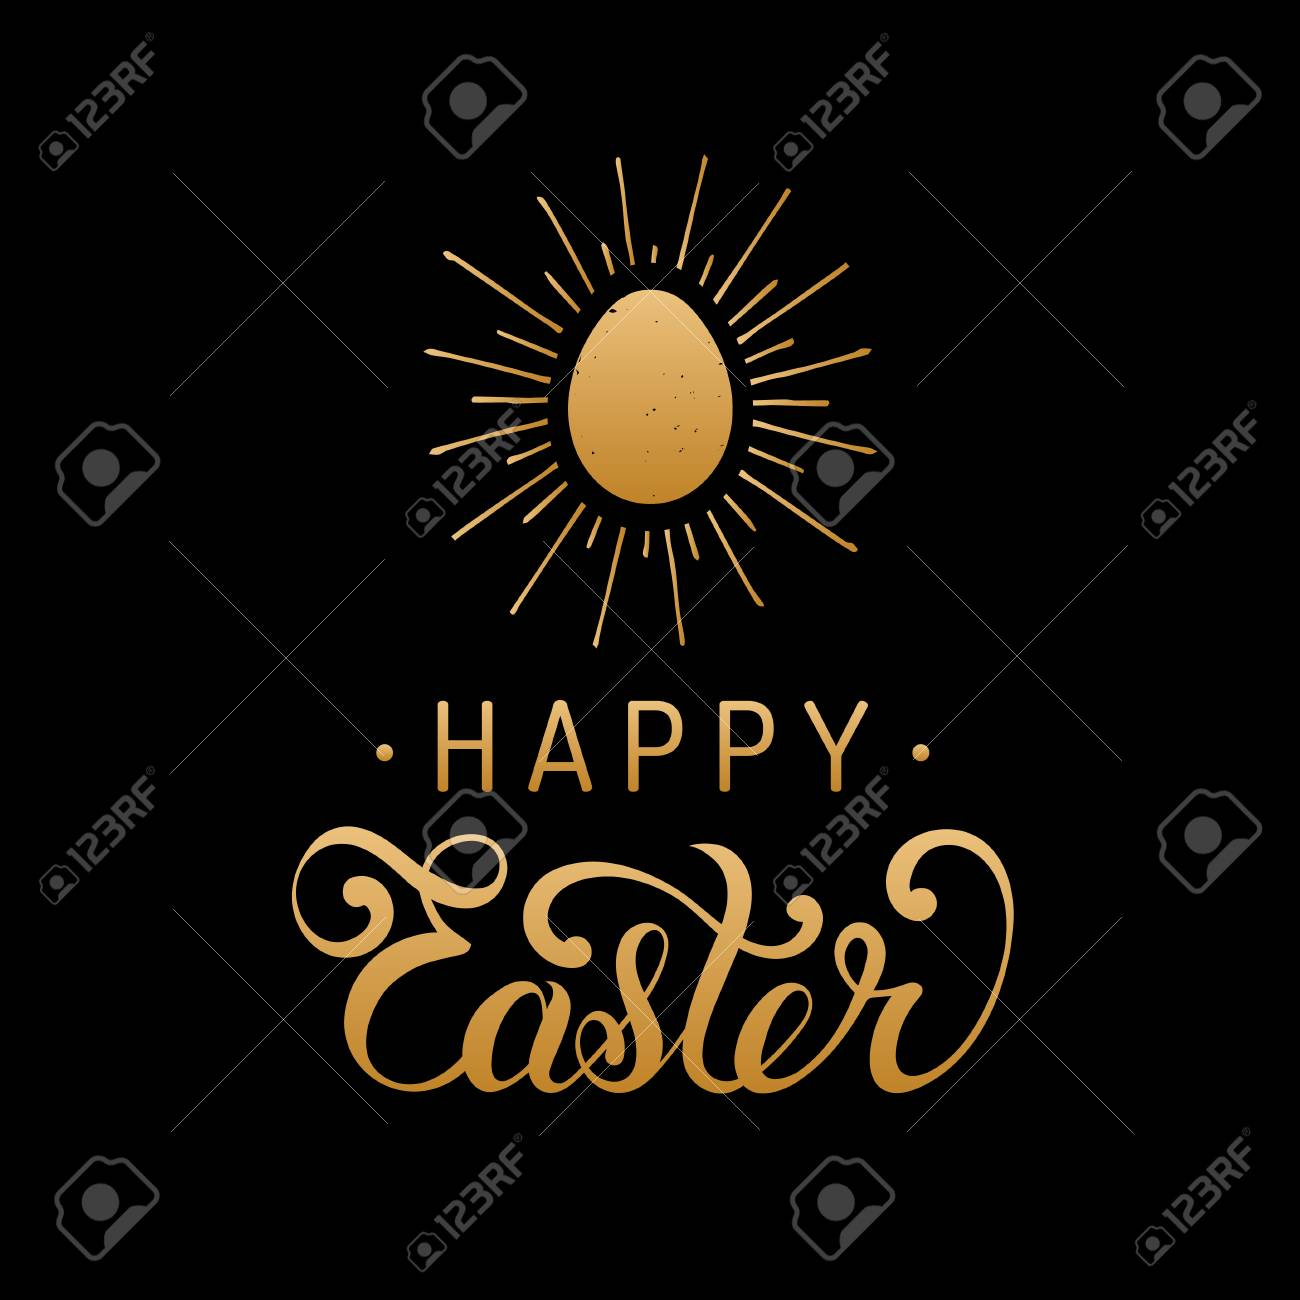 Happy Easter Type Greeting Card With Egg Religious Vector